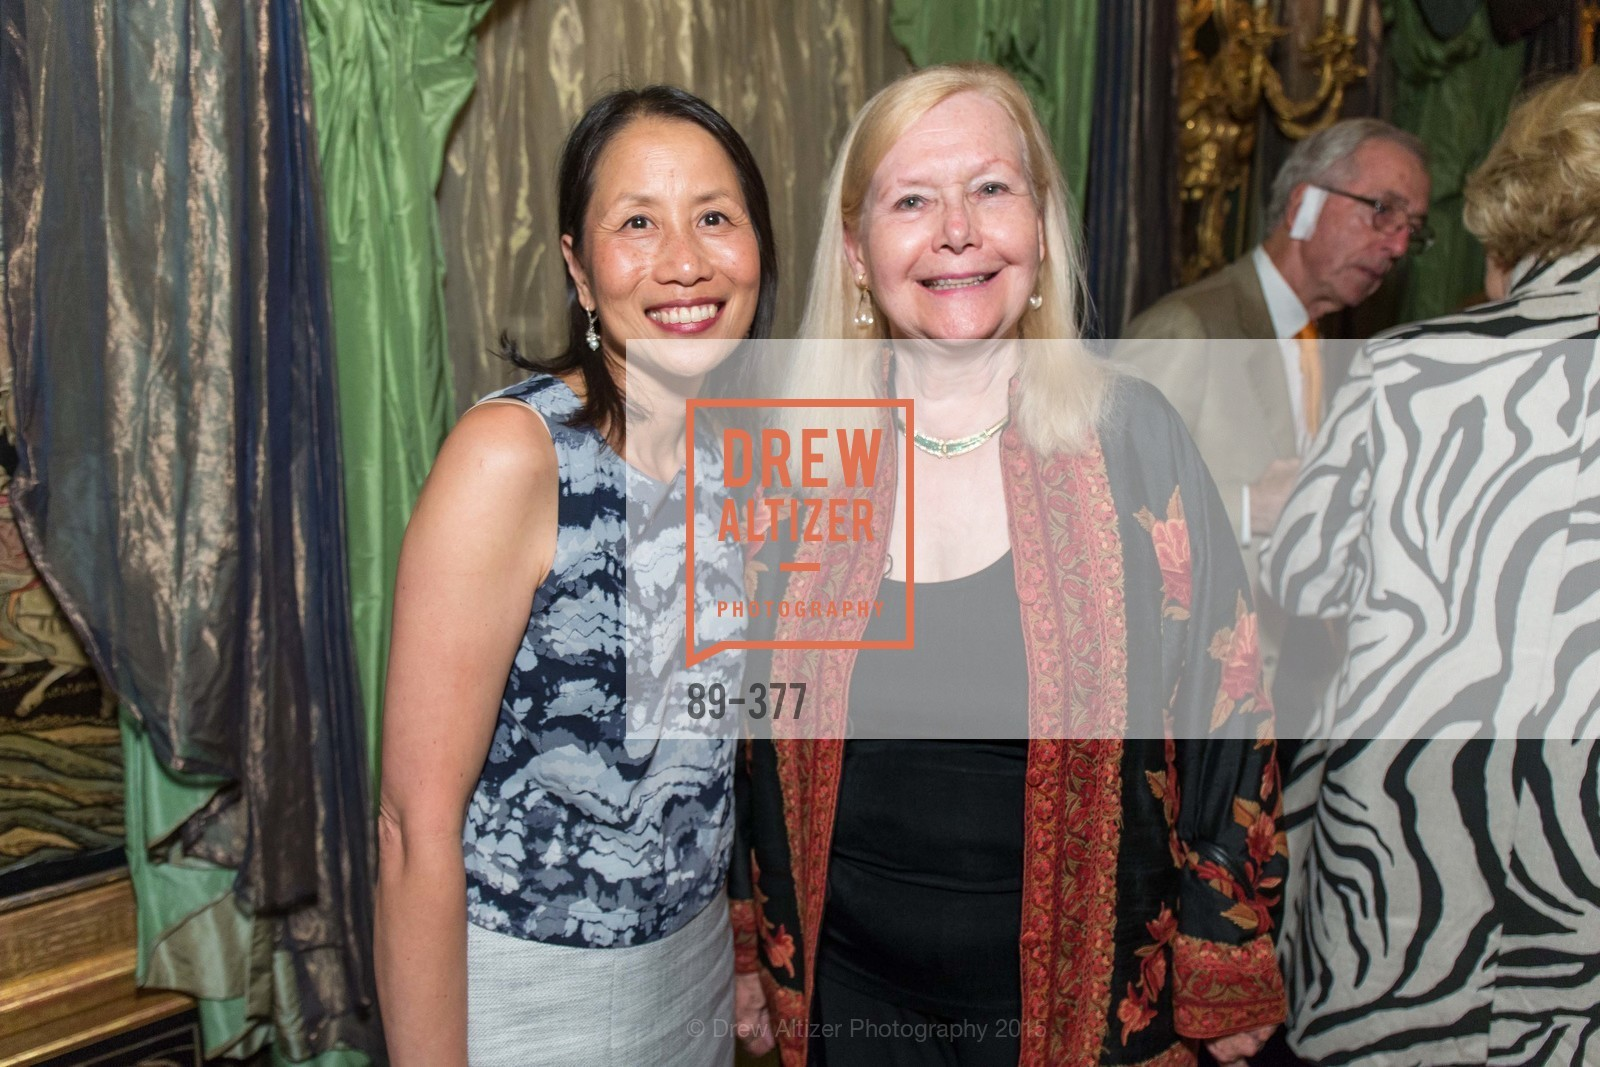 June Hom, Bernice Lyndstrom, Ann and Gordon Getty Host SF Conservatory of Music with Marilyn Horne, Private Residence, October 15th, 2015,Drew Altizer, Drew Altizer Photography, full-service agency, private events, San Francisco photographer, photographer california